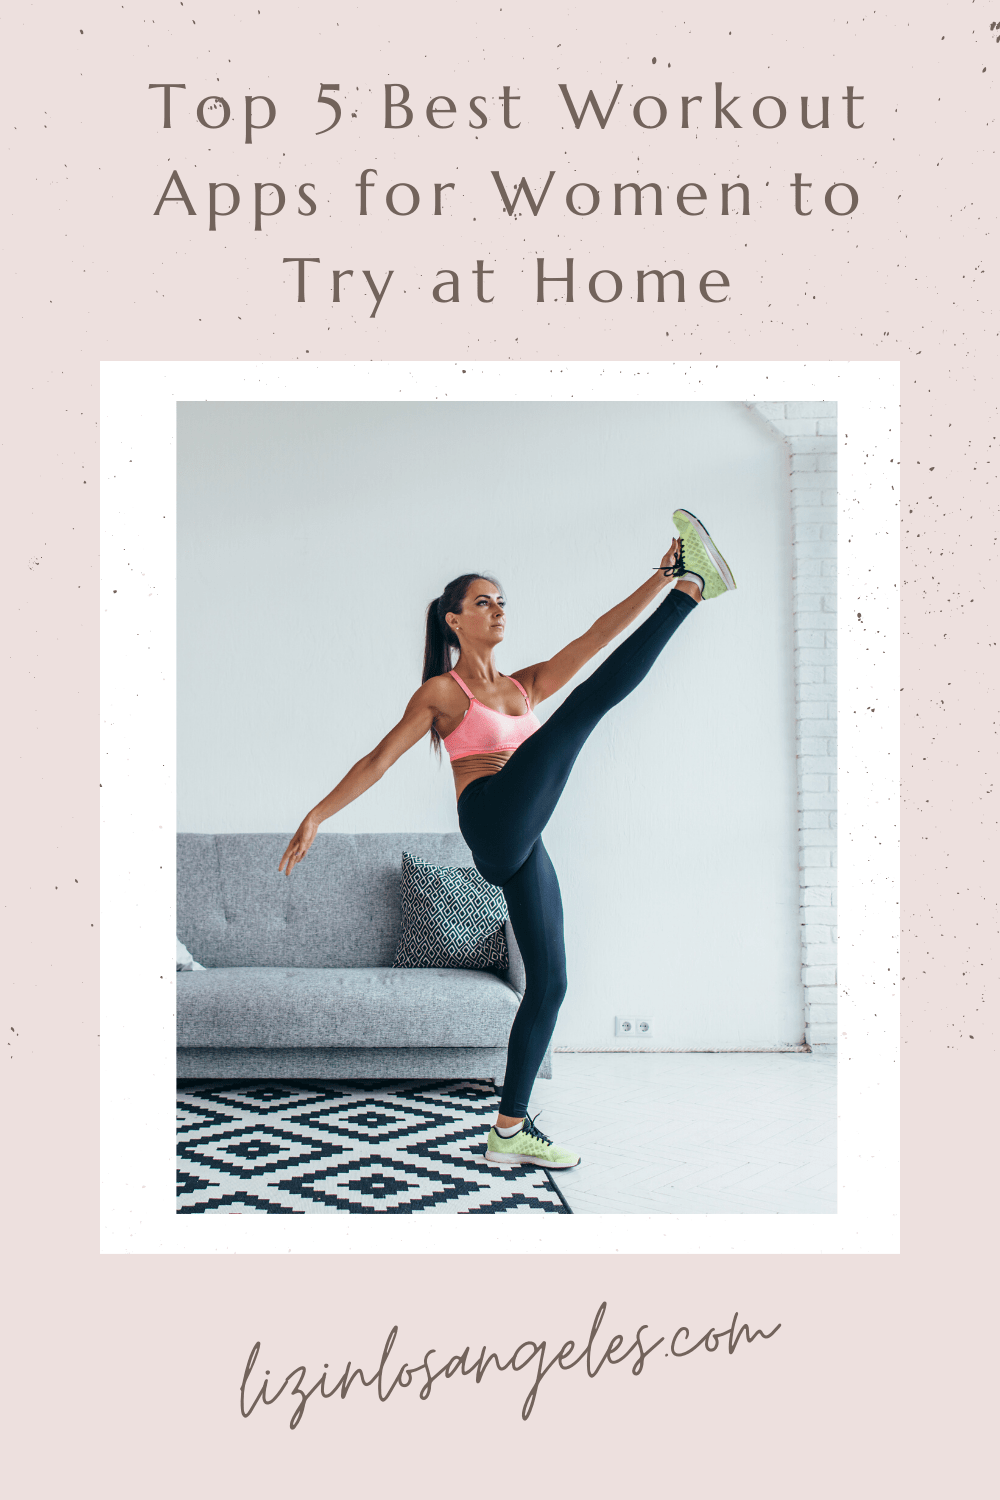 Top 5 Best Workout Apps for Women to Try at Home, a blog post by Liz in Los Angeles: image of a woman working out